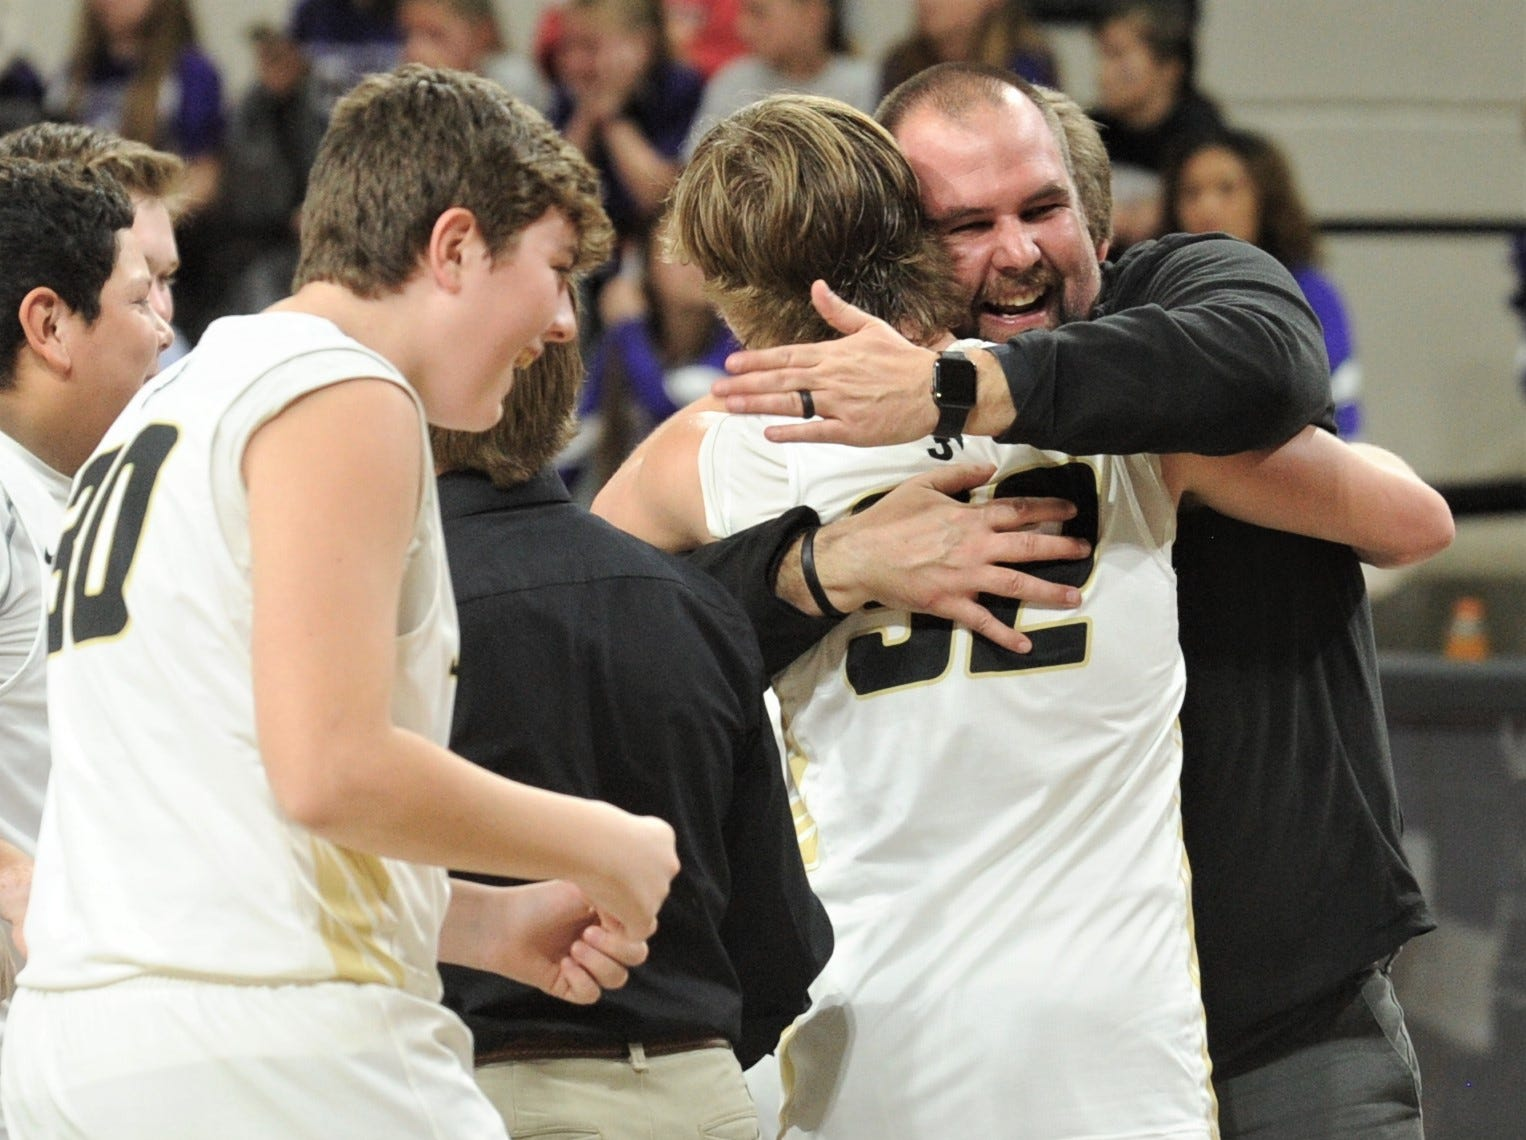 Jayton assistant coach Josh Stanaland, right, hugs Tye Scogin after the Jaybirds beat Irion County 47-32 in the Region II-1A championship game Saturday, March 2, 2019, at Abilene Christian's Moody Coliseum. It's Jayton's first state berth.